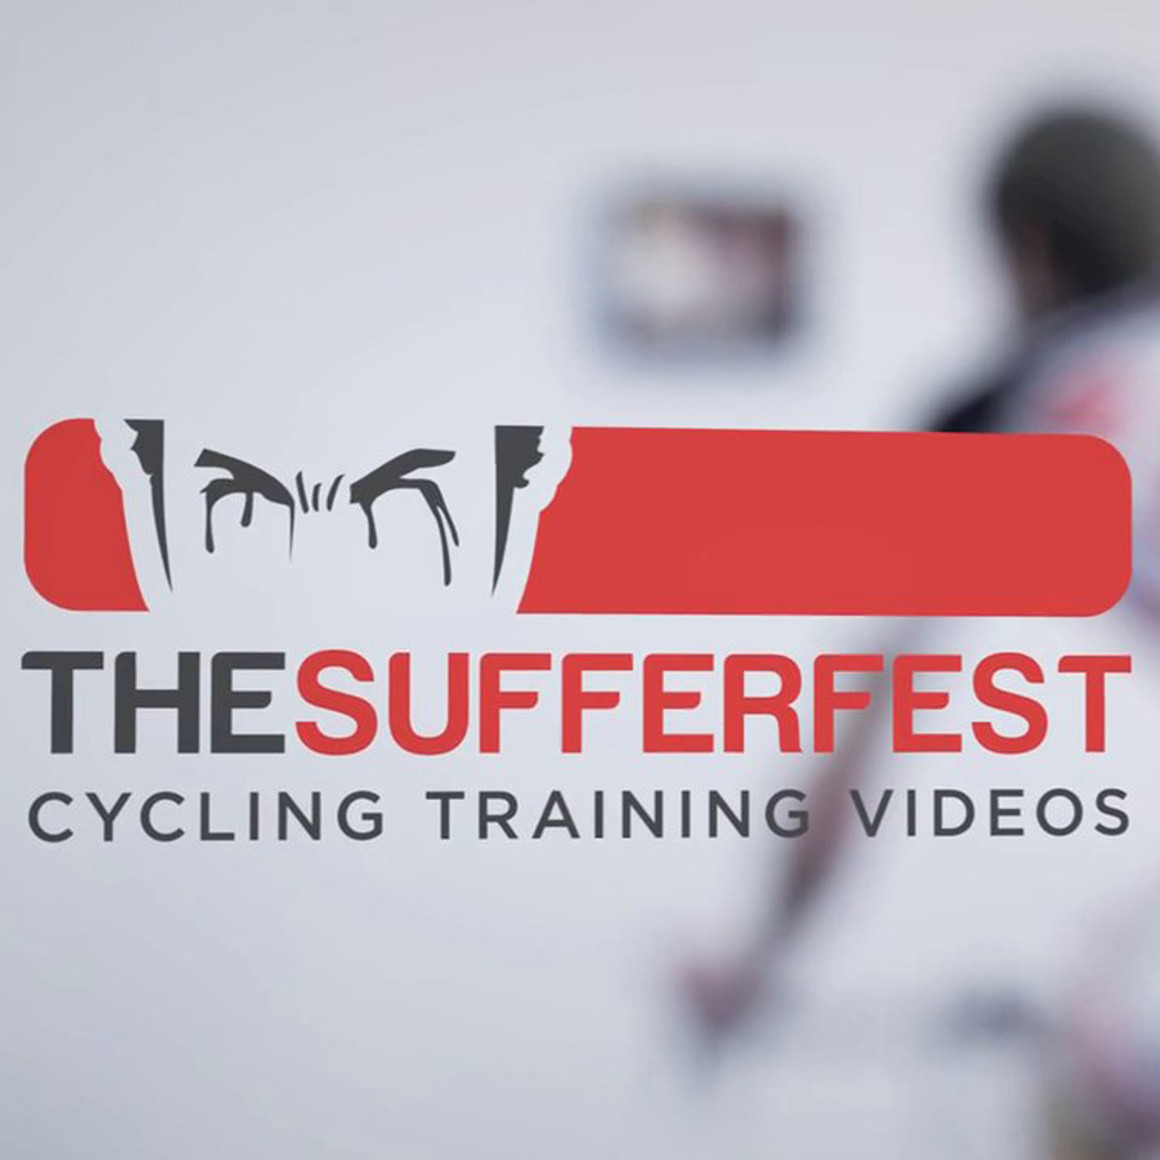 Cyclizing / The Sufferfest Indoor Cycling Training Videos